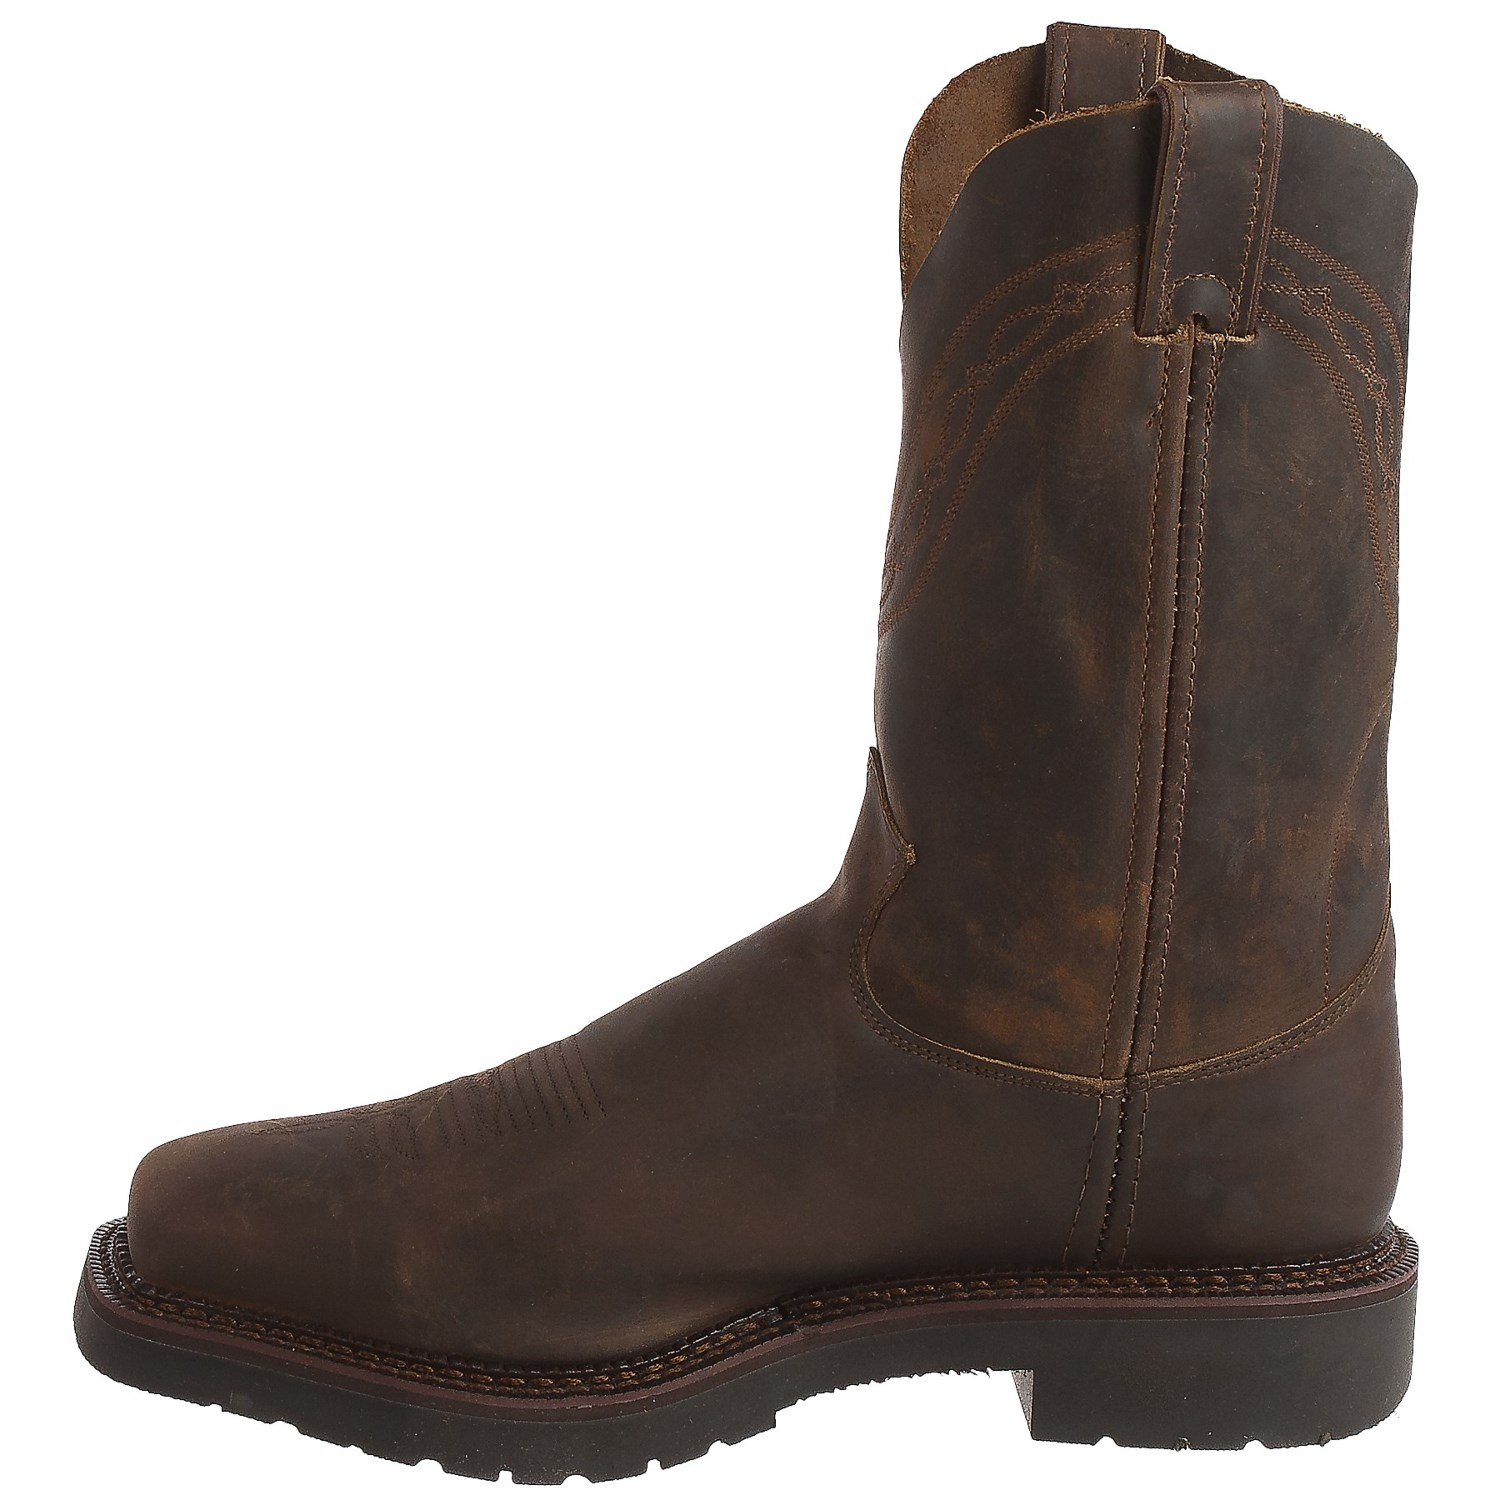 Justin leather work gloves - Justin Boots Sunderland Crazyhorse Cowboy Work Boots Leather For Men